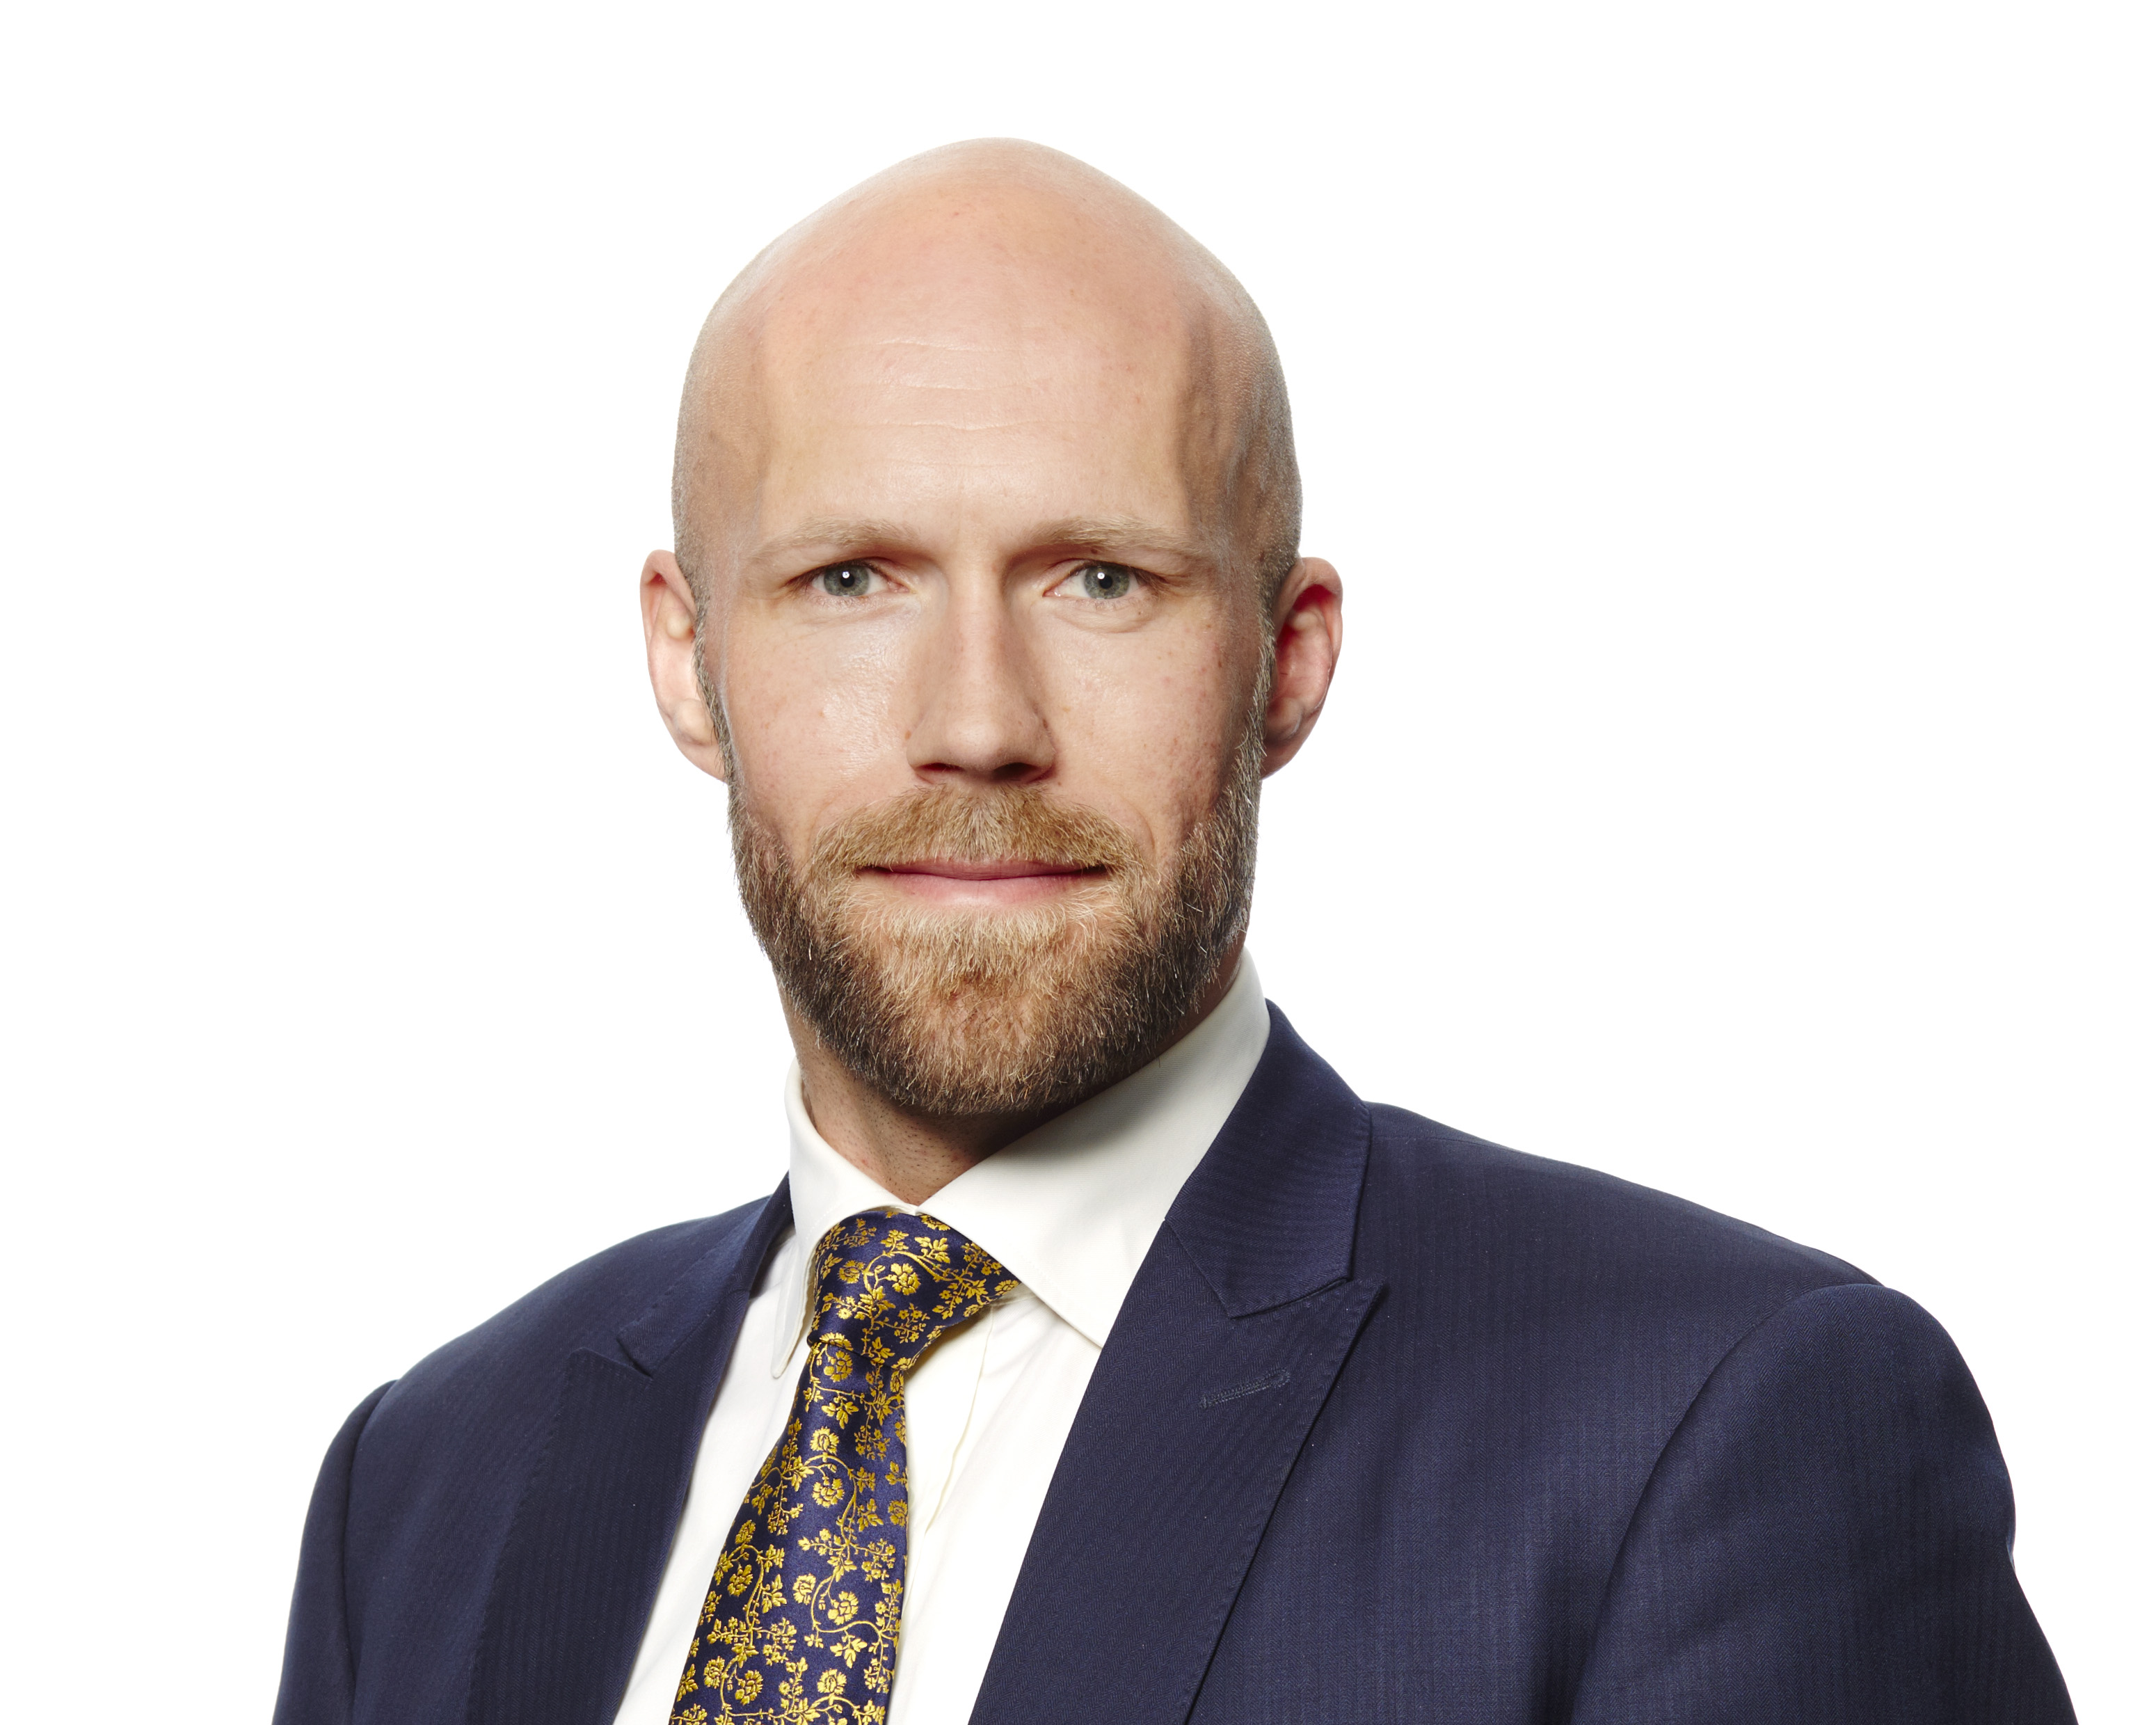 Cardano Foundation names Frederik Gregaard as its first CEO